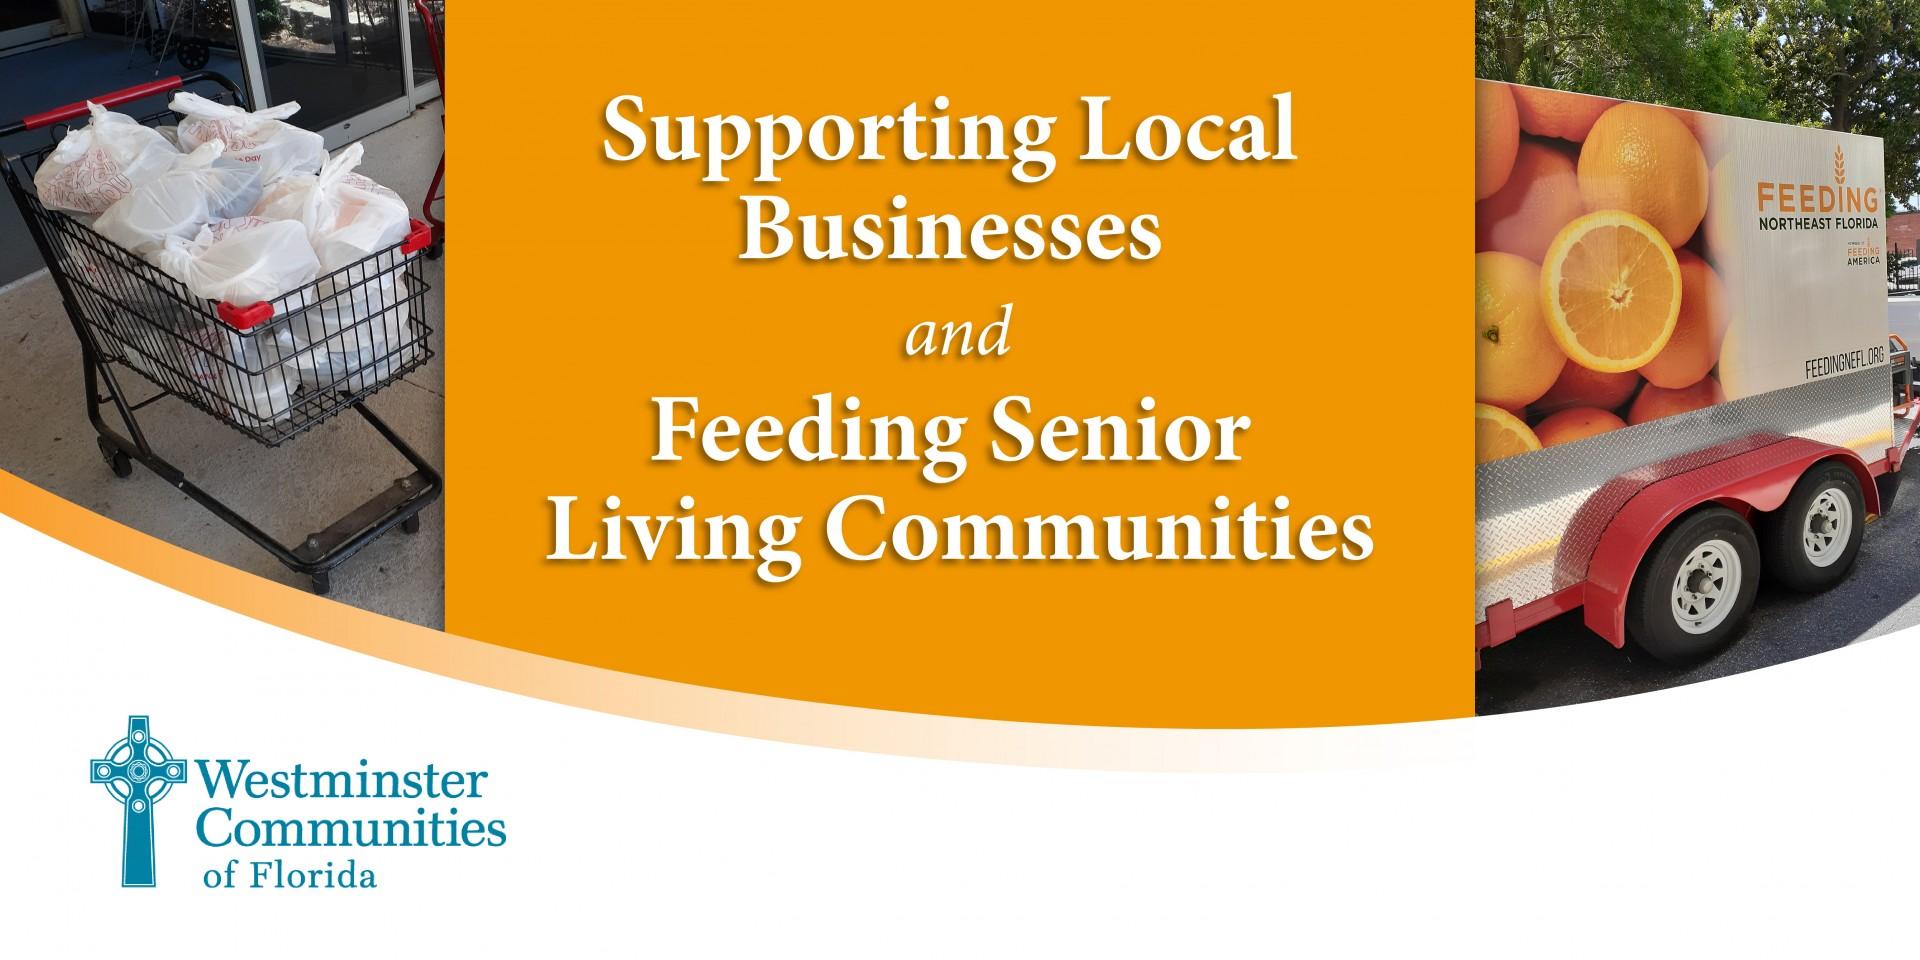 Supporting Local Businesses and Feeding Senior Living Communities